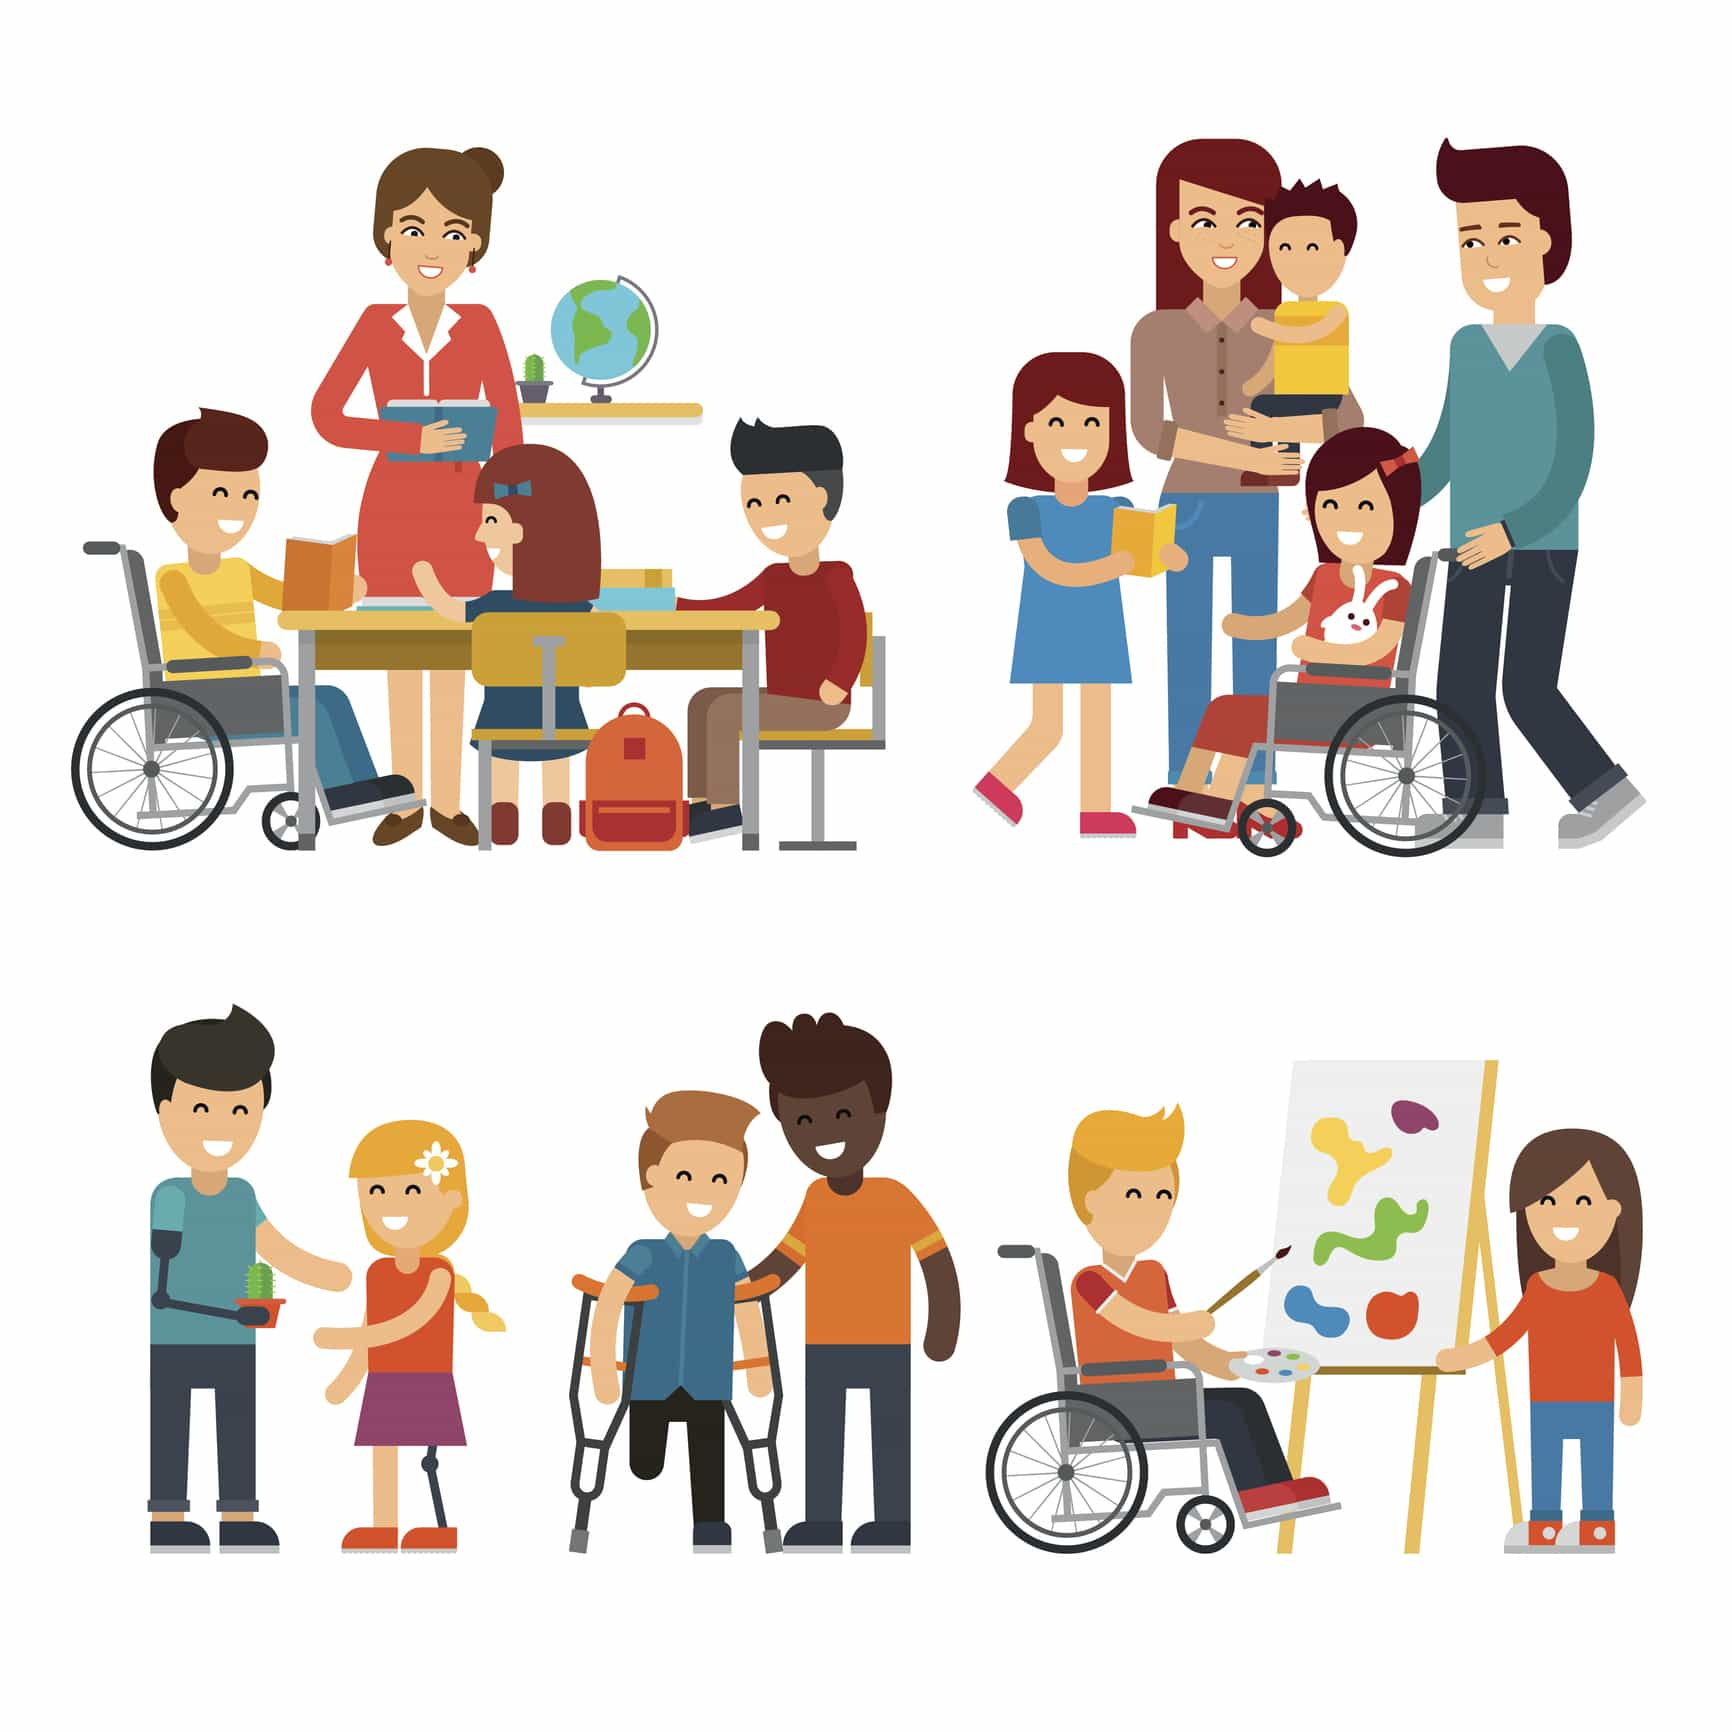 Diversity clipart inclusive classroom. What does inclusion look